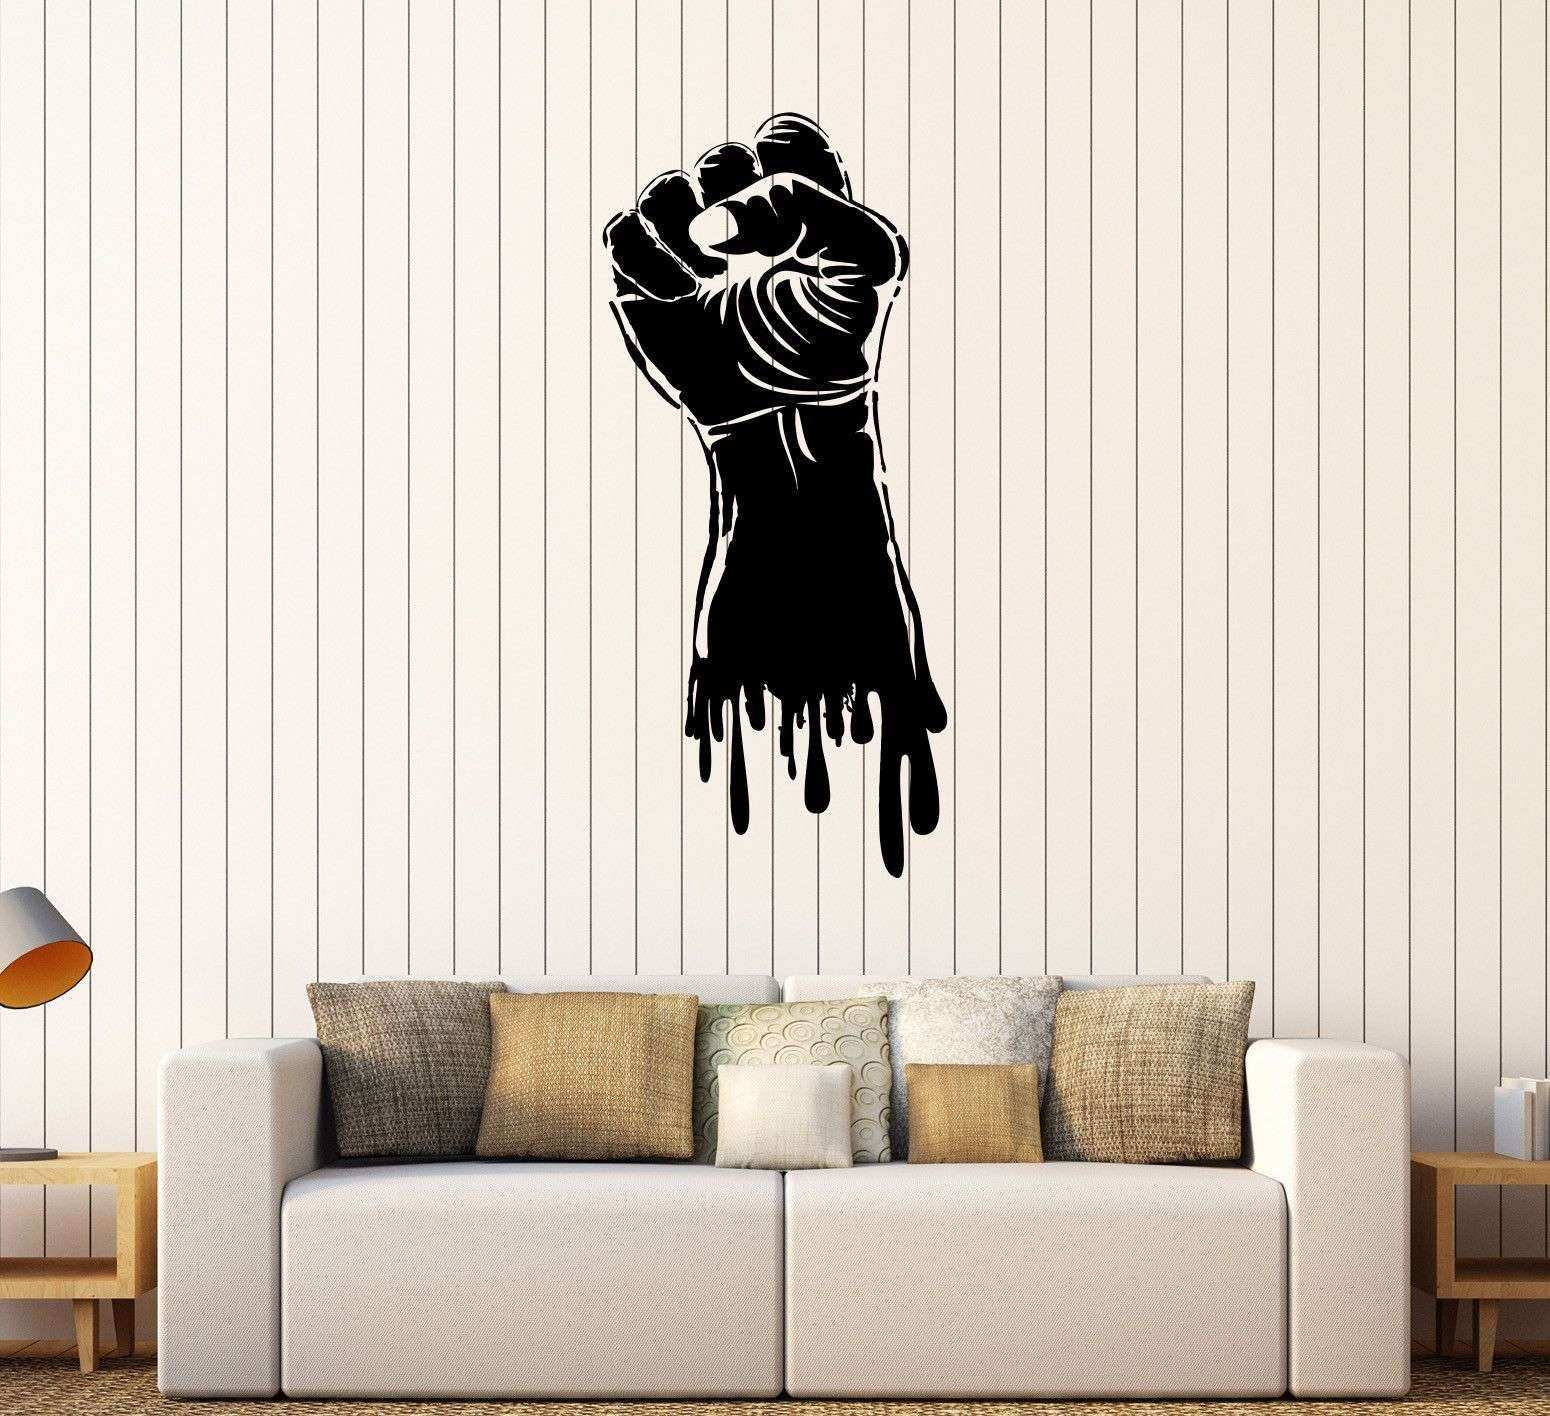 Wall Decor Stickers for Bedroom Elegant Vinyl Wall Decal Fist Hand